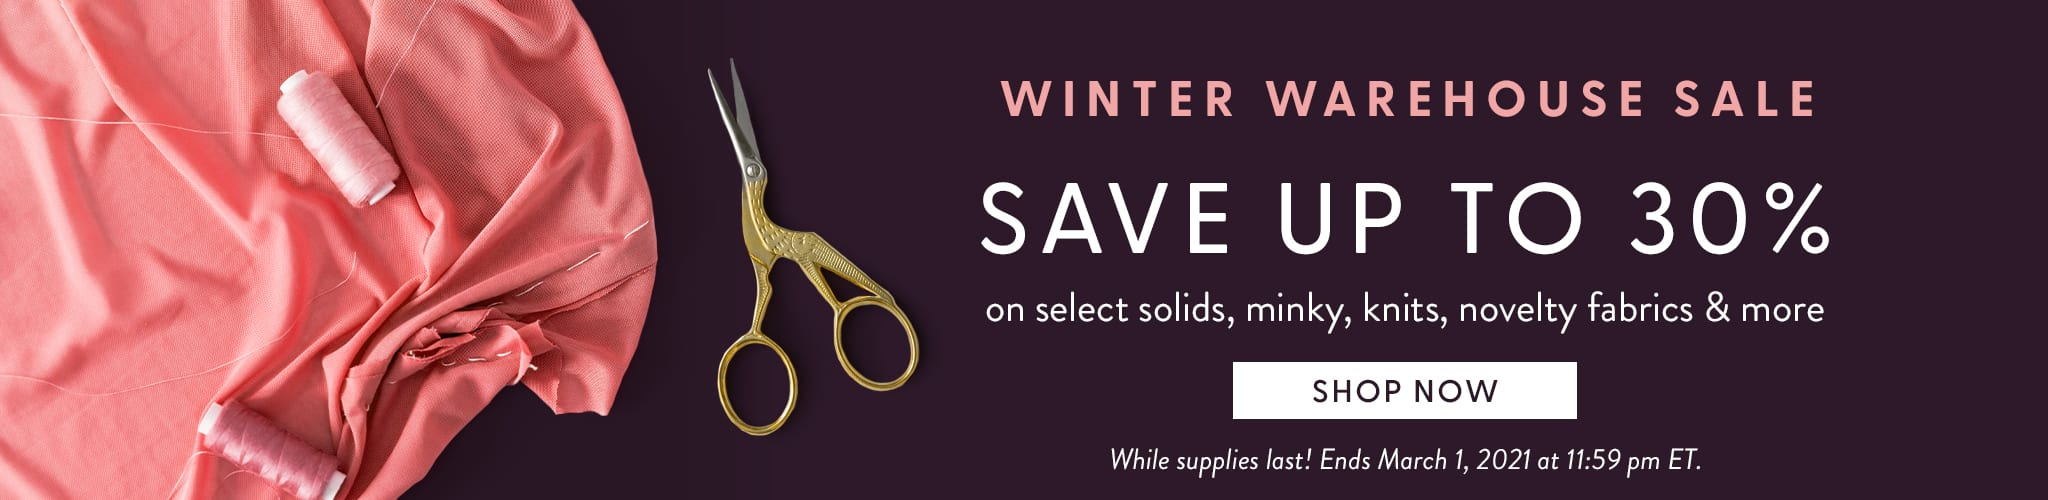 Winter Warehouse Sale - Save up to 30% on select minky, knits, solids, and more